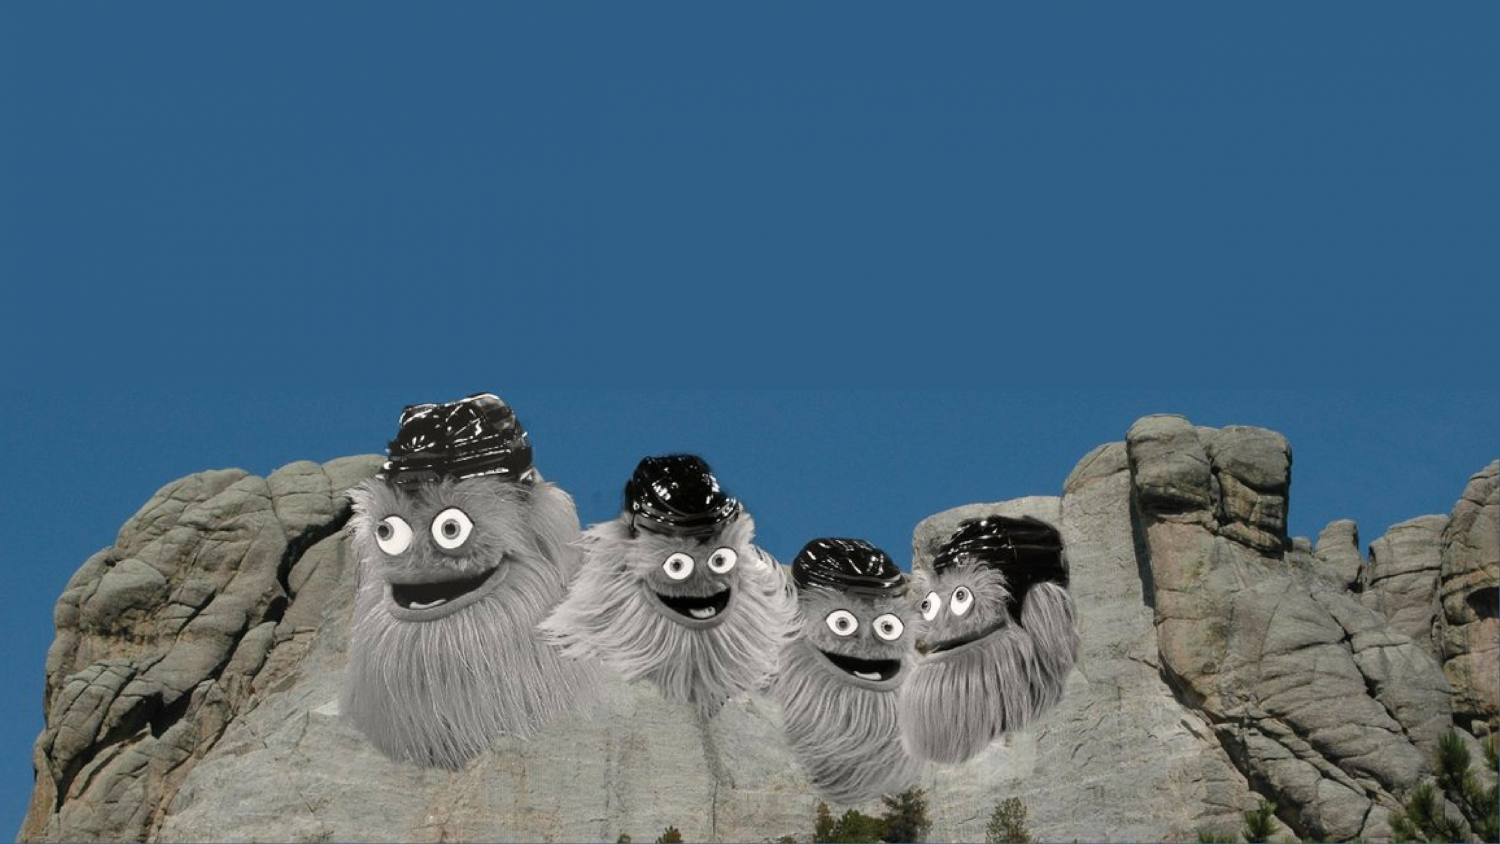 gritty mt rushmore